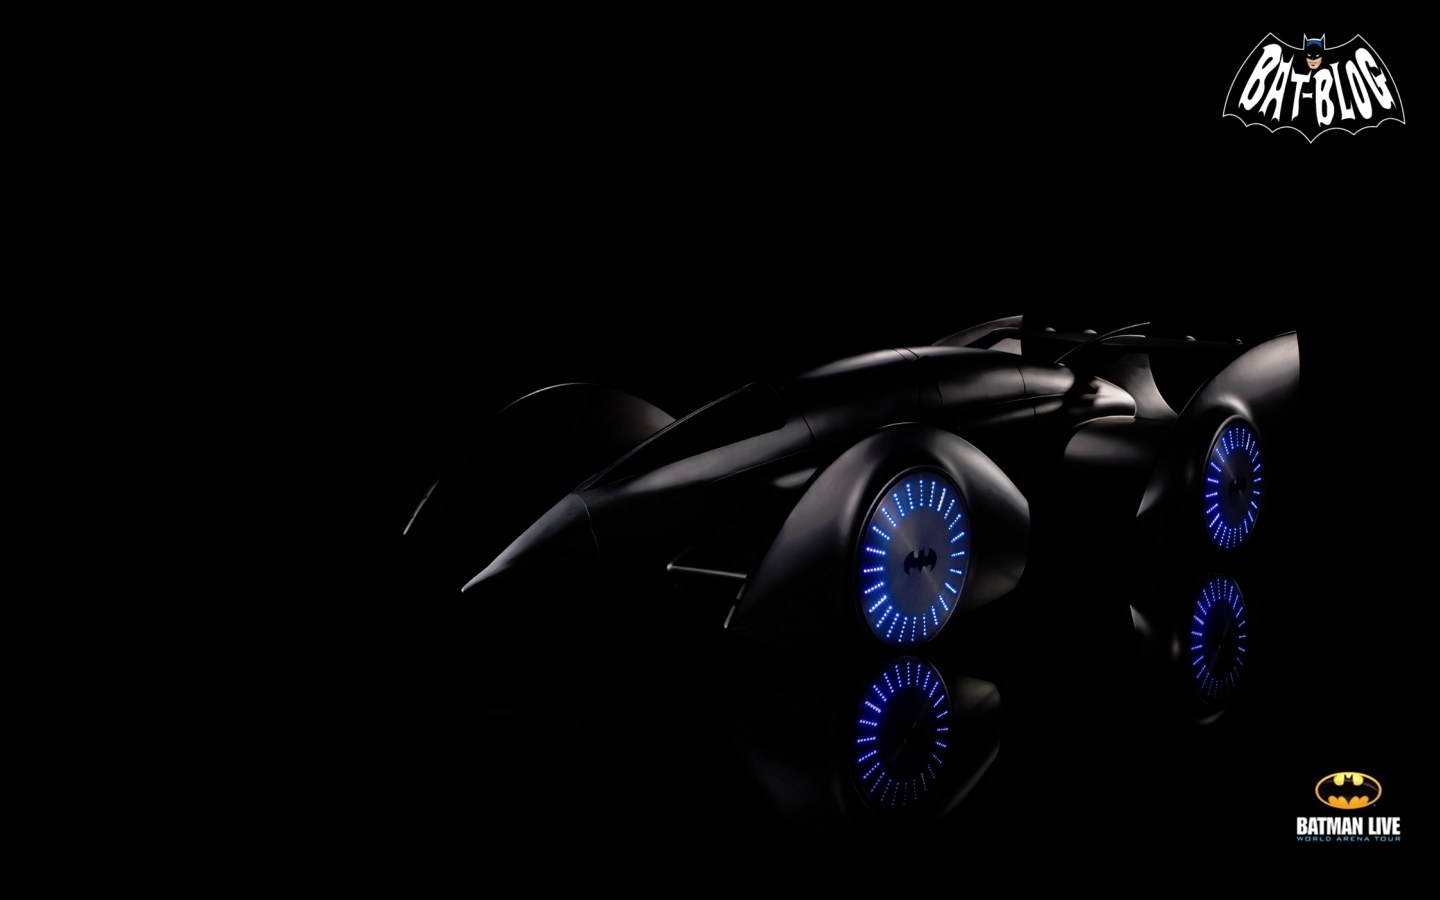 BATMAN LIVE BATMOBILE CAR